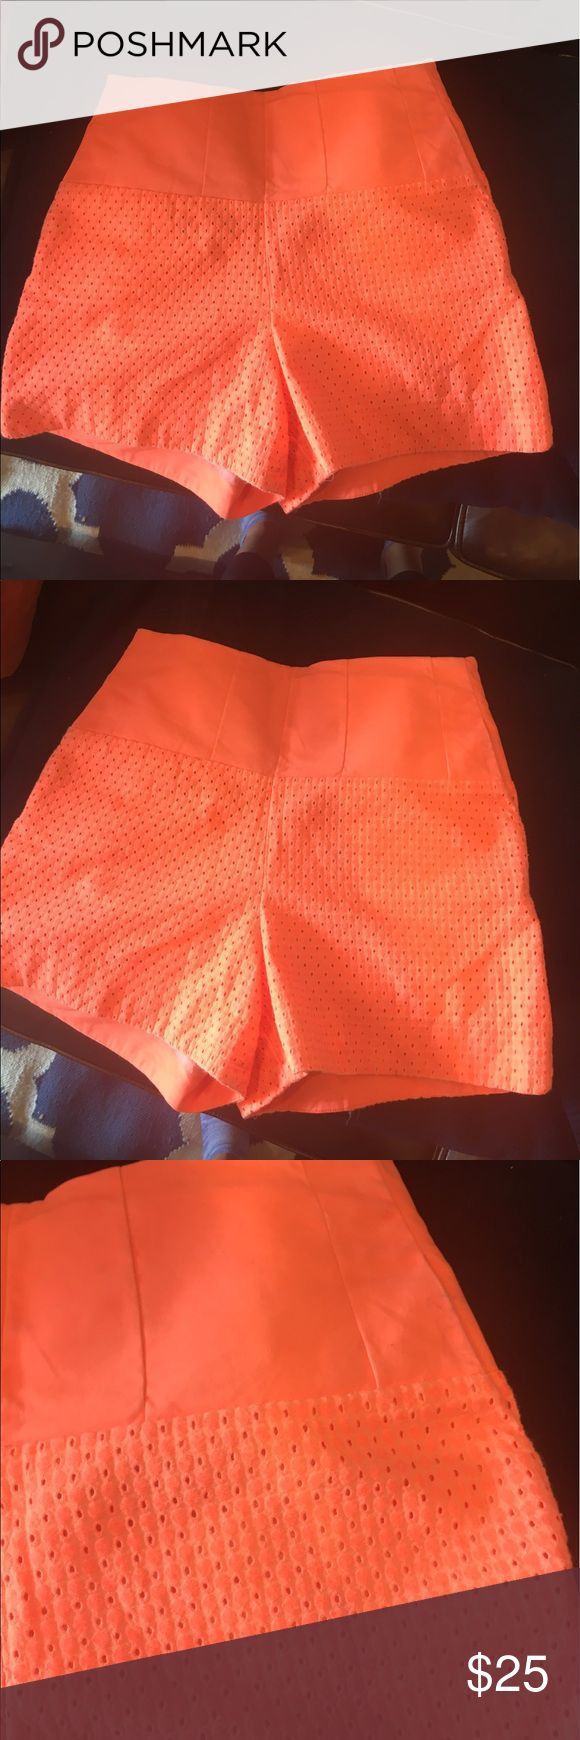 "ANTHROPOLOGIE  sunburst eyelet shorts Cute muted neon orange color and eyelet , high waisted. Cartonnier for Anthropologie, 3"" inseam Anthropologie Shorts"